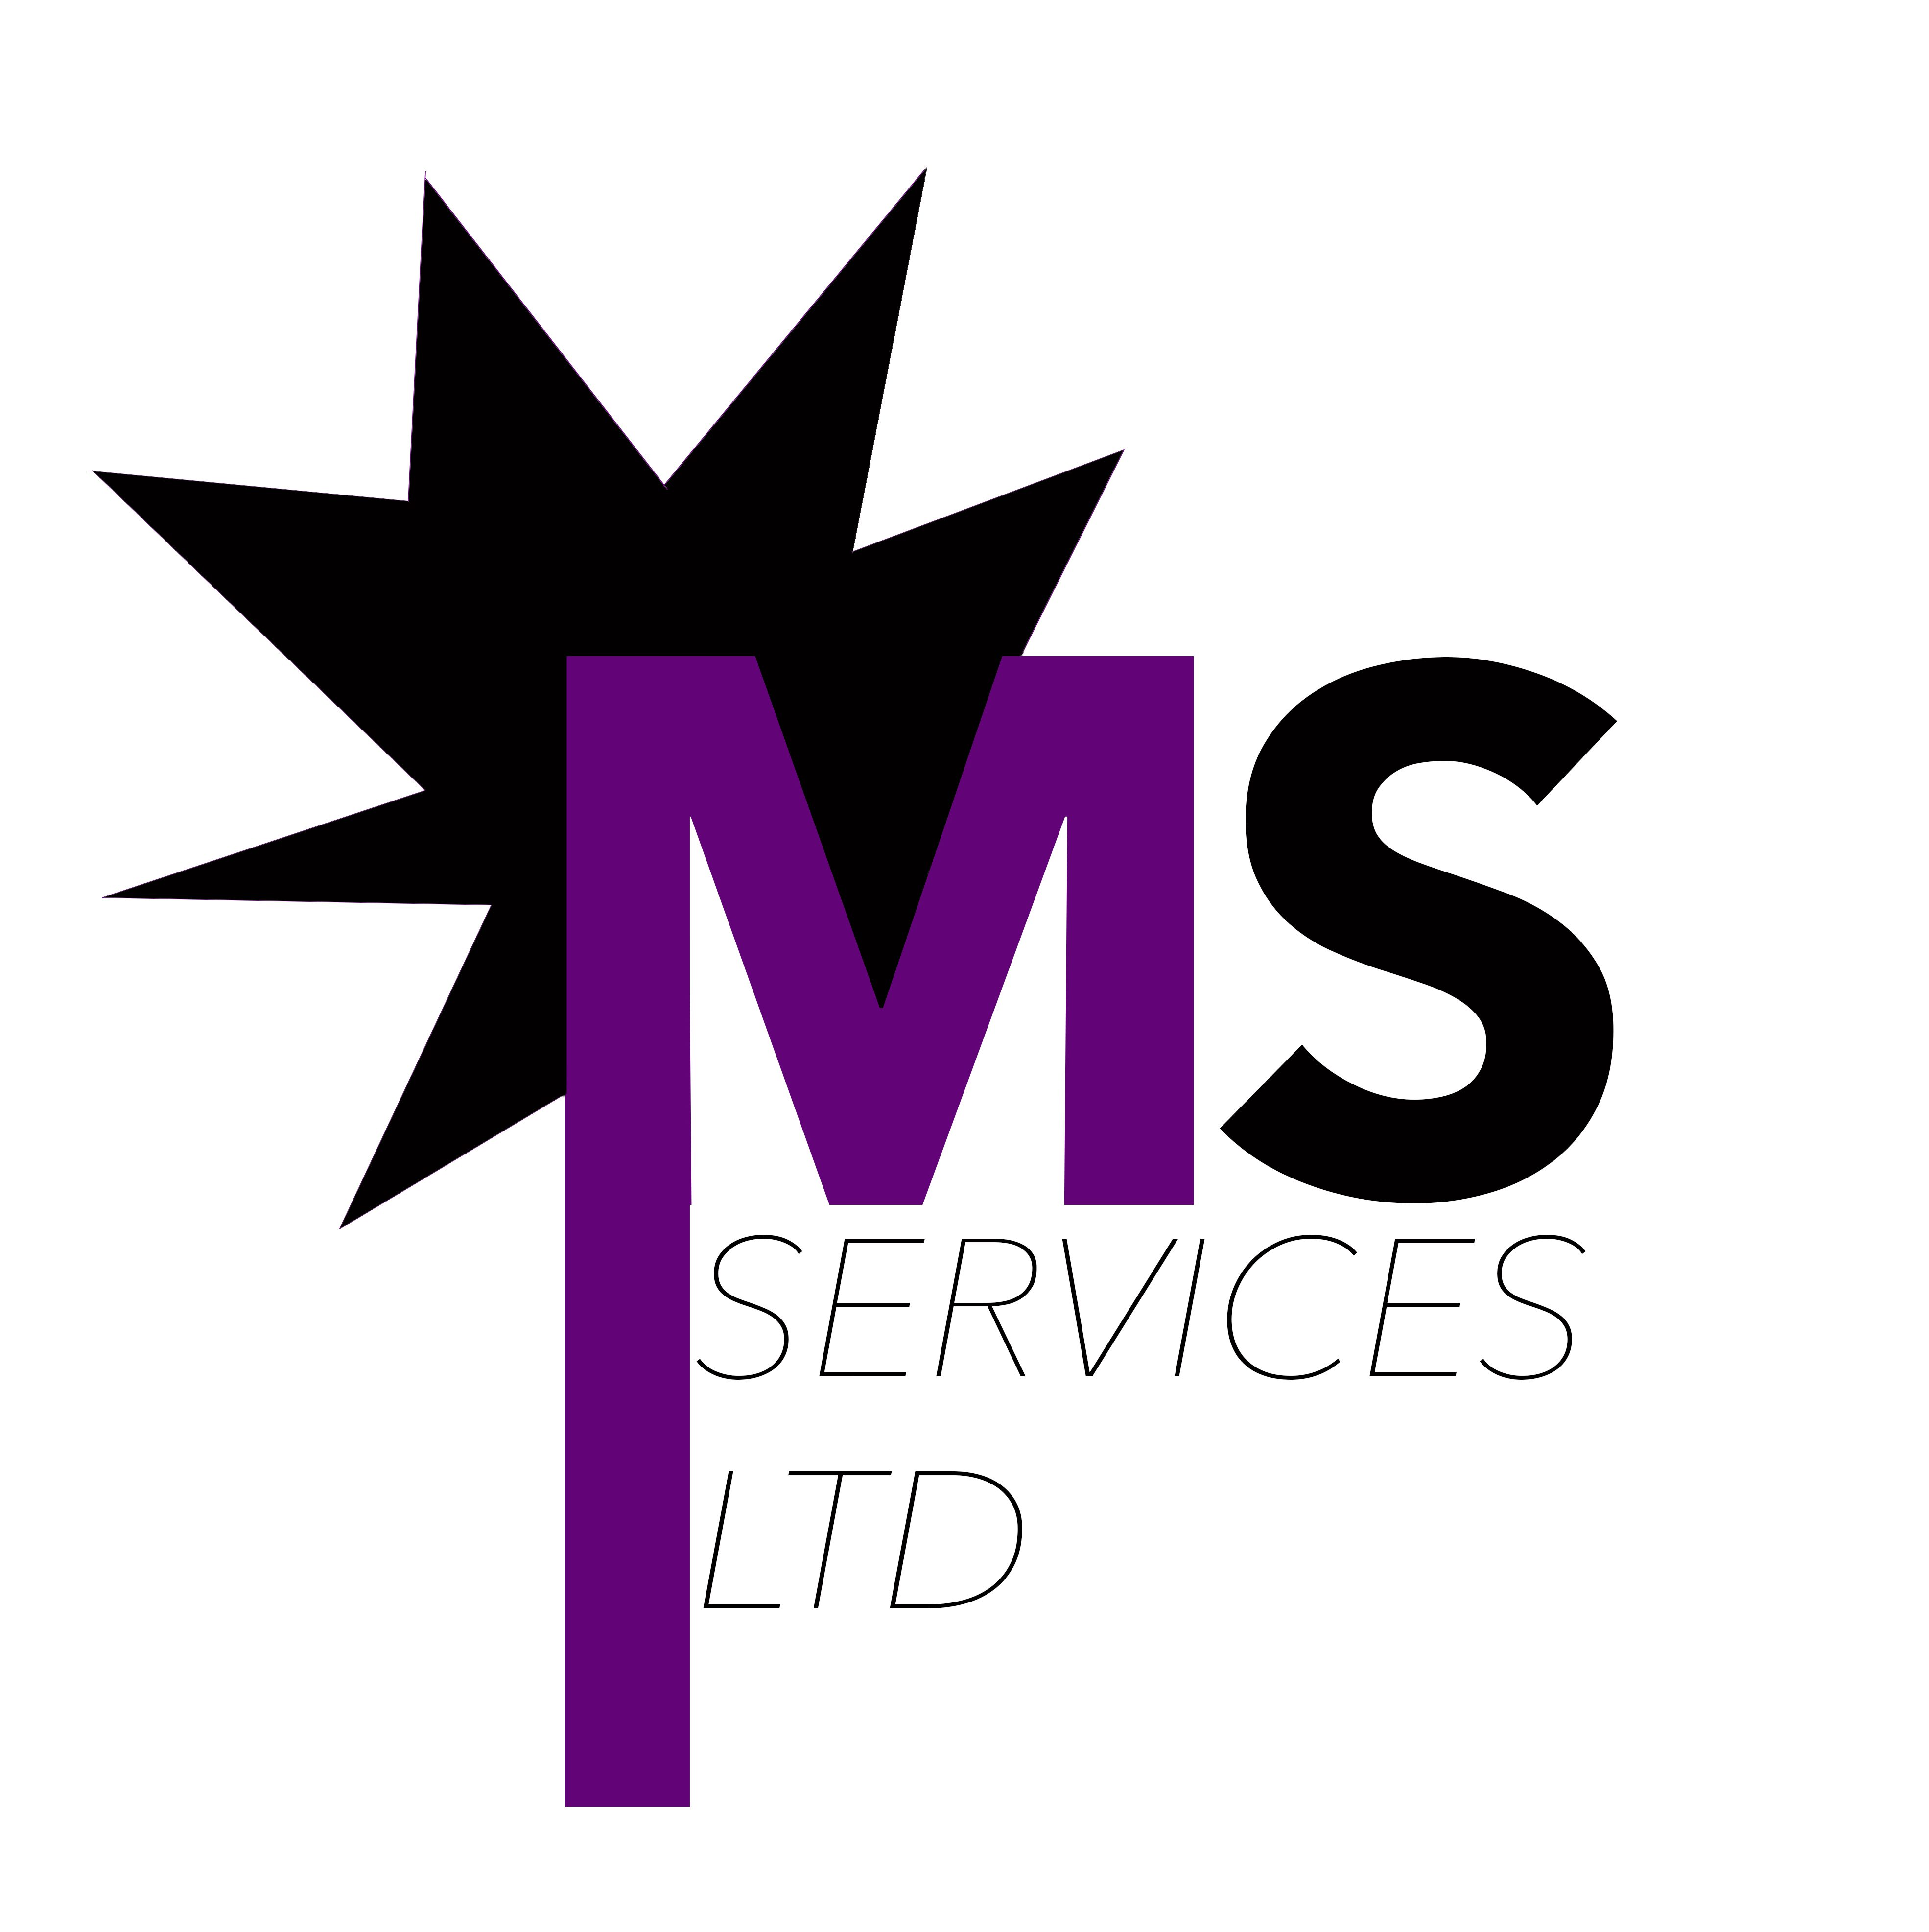 Welcome to MarketSpark Services LTD